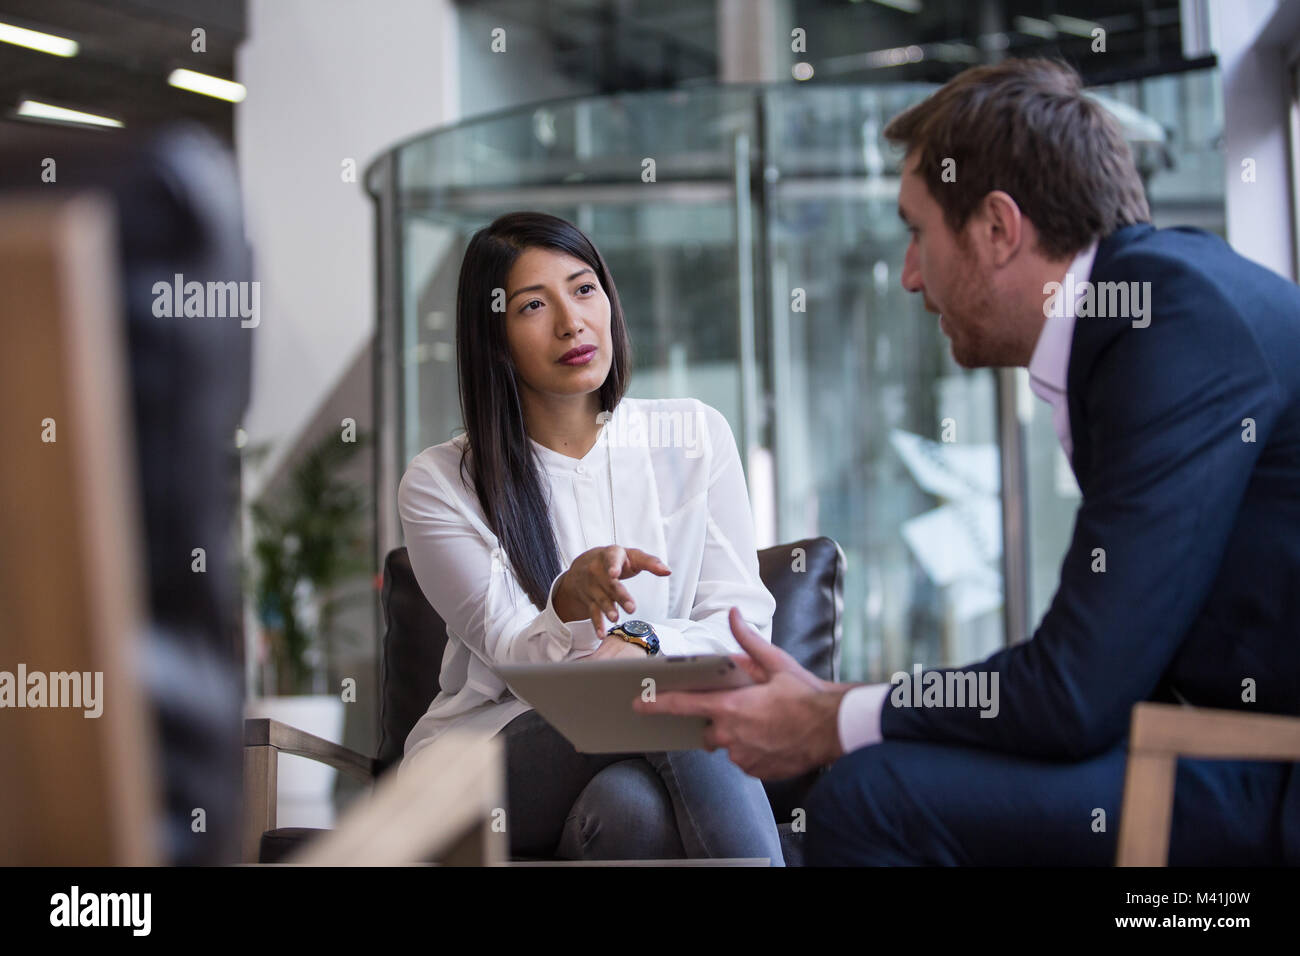 Businesswoman interviewing - Stock Image